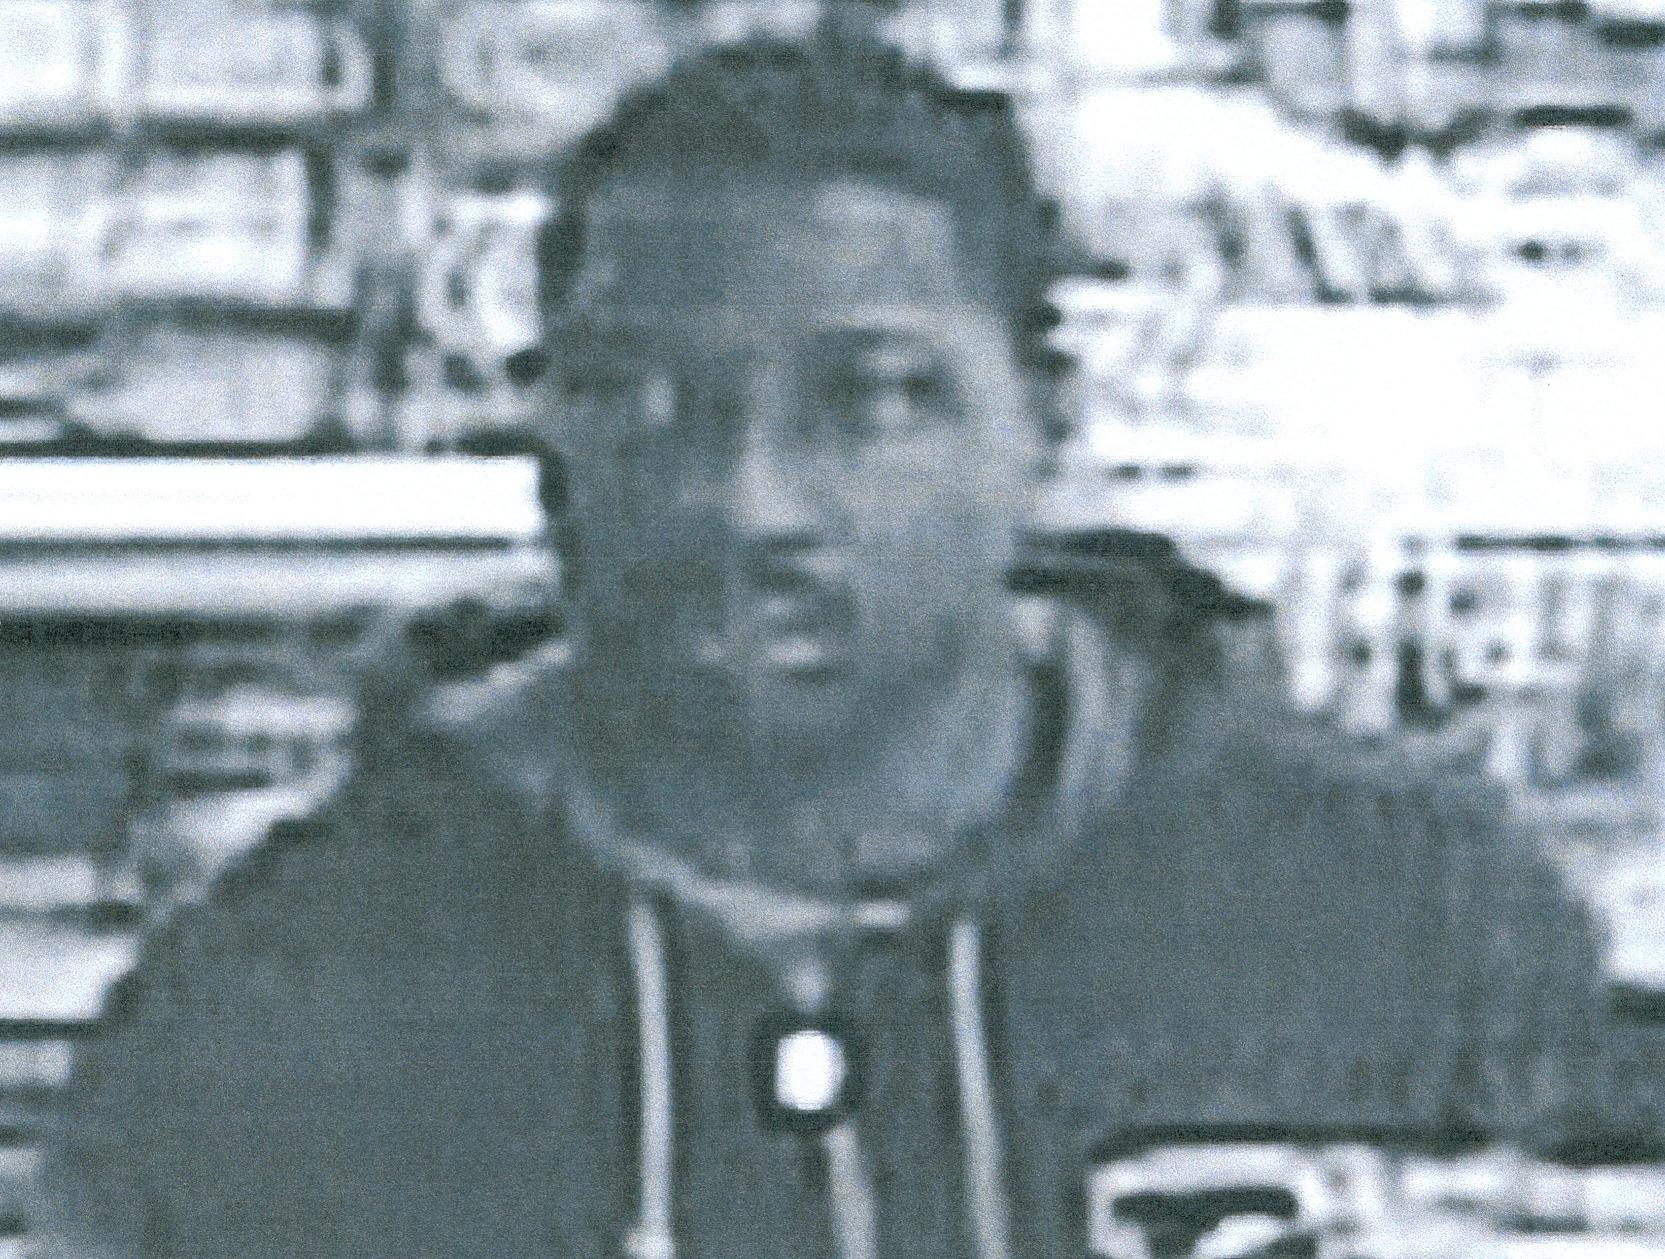 One of the 3 suspects.